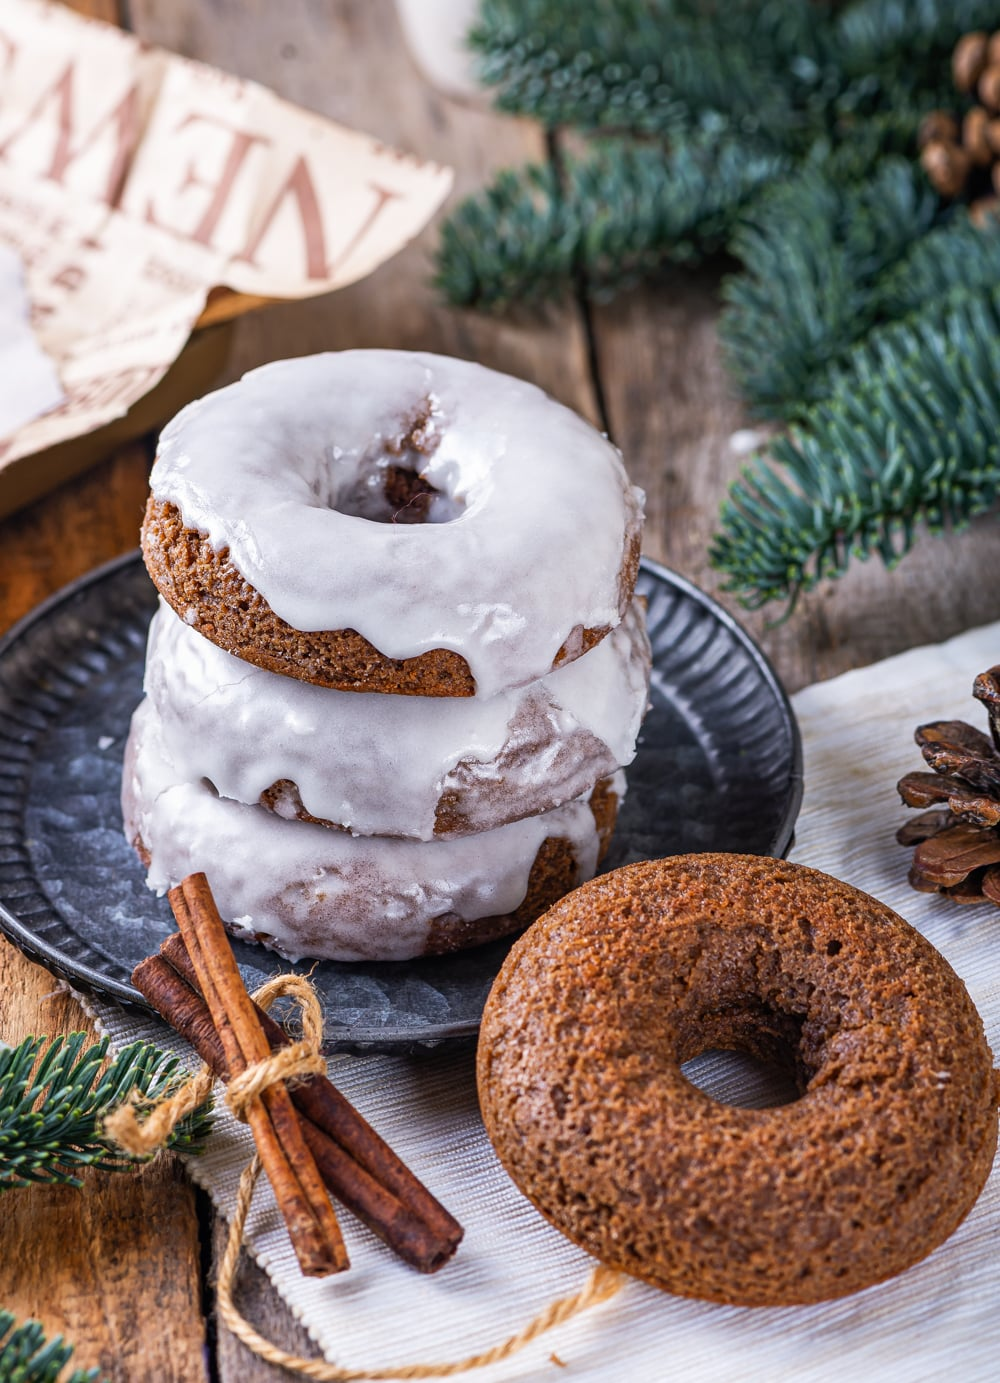 A stack of three glazed gingerbread donuts on a plate. An unglazed gingerbread donut is set to the right in front of the plate with a bundle of cinnamon to the left of the plate.